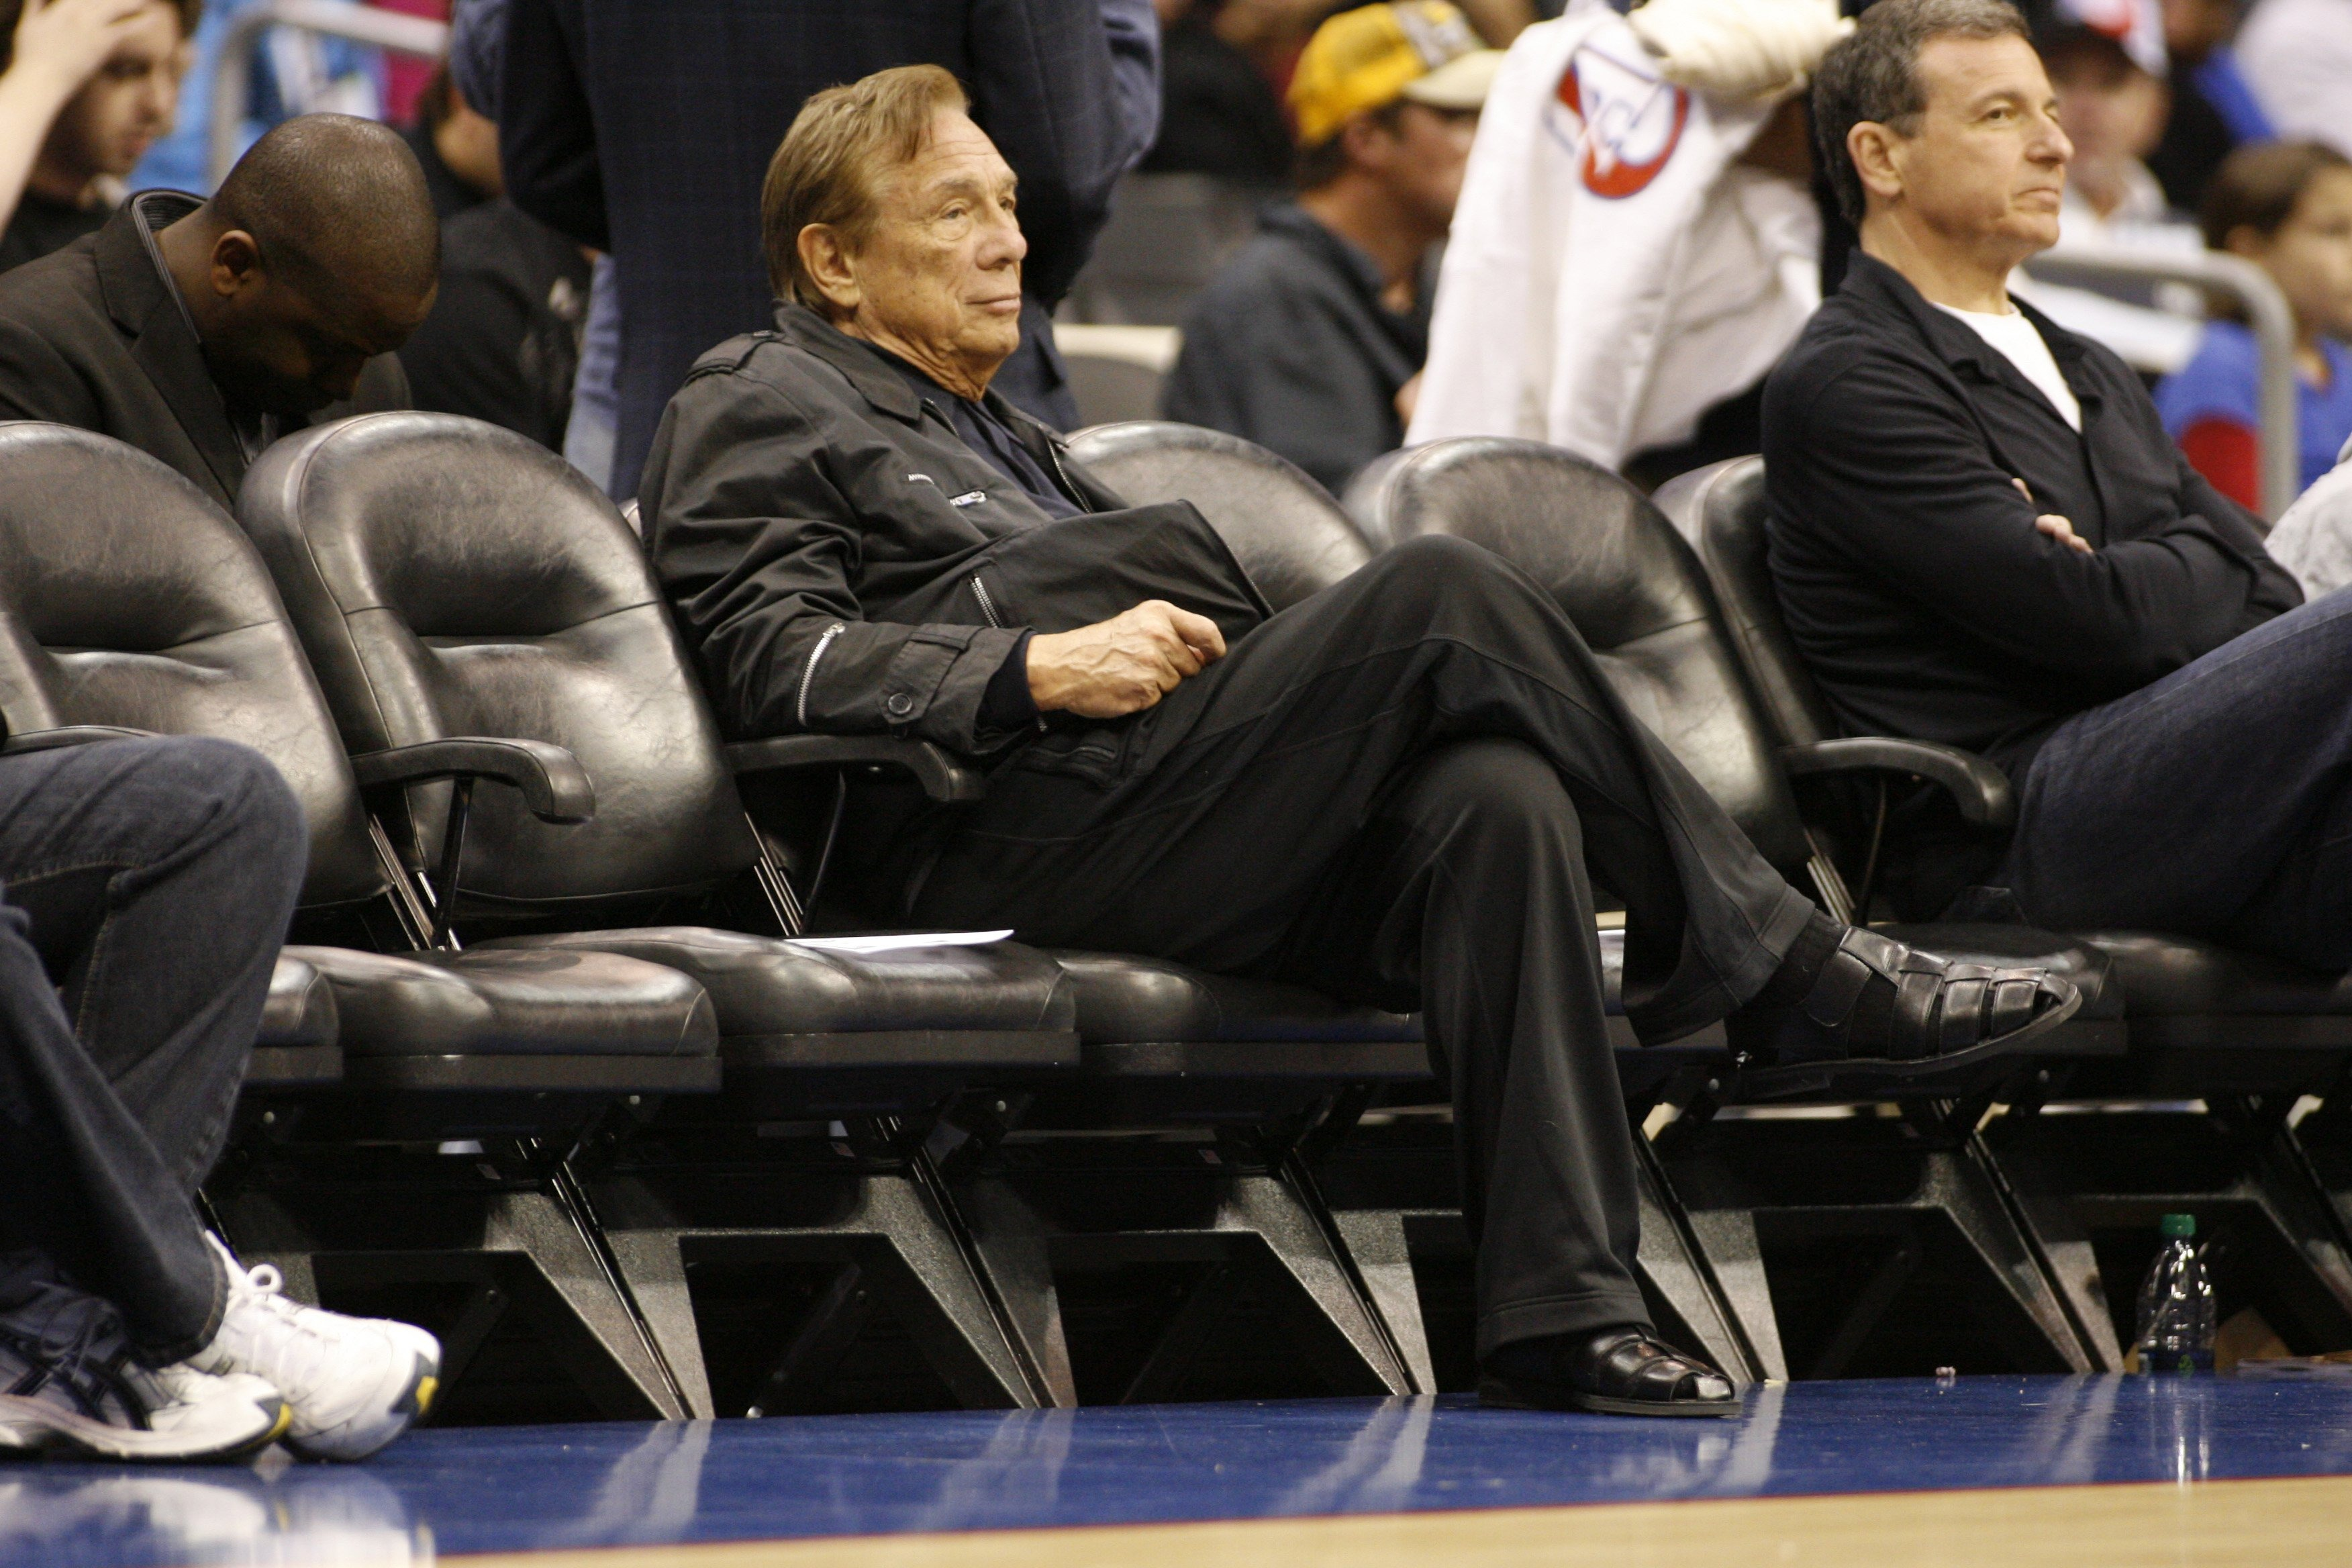 Los Angeles Clippers owner Donald Sterling sits courtside at the NBA basketball game between the New York Knicks and the Los Angeles Clippers in Los Angeles on April 4, 2010.